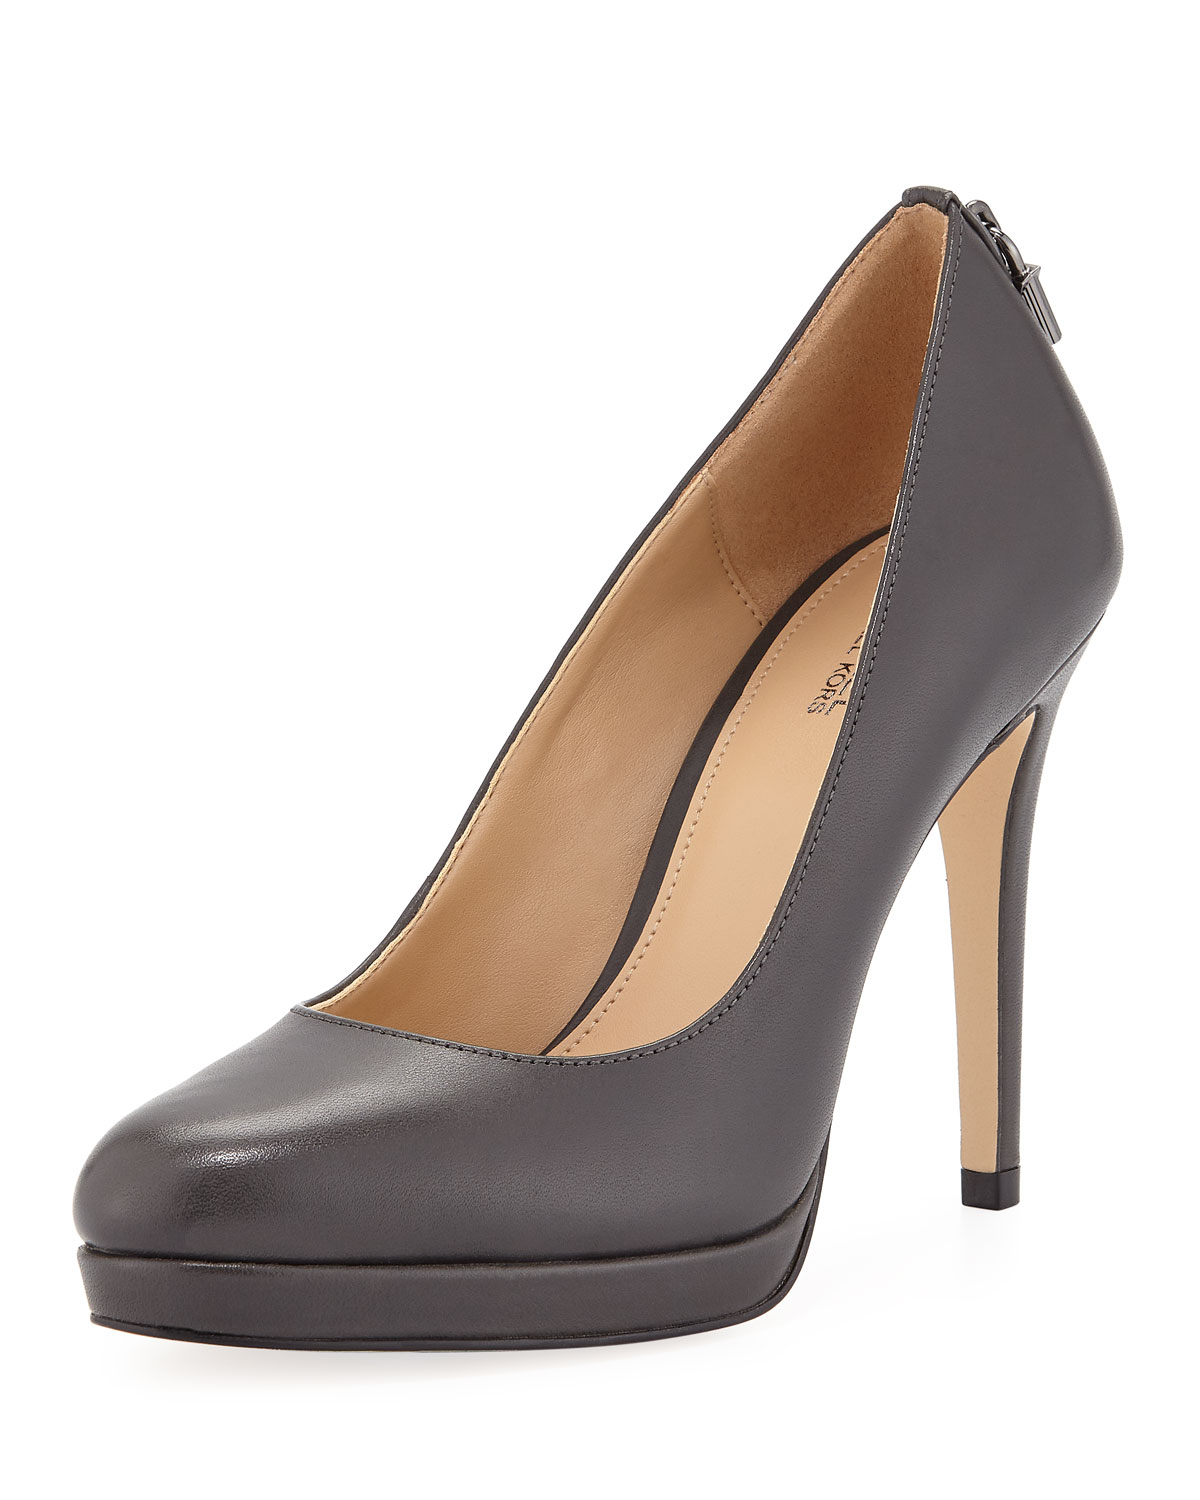 Antoinette Leather Platform Pumps With Padlock, Charcoal Leather